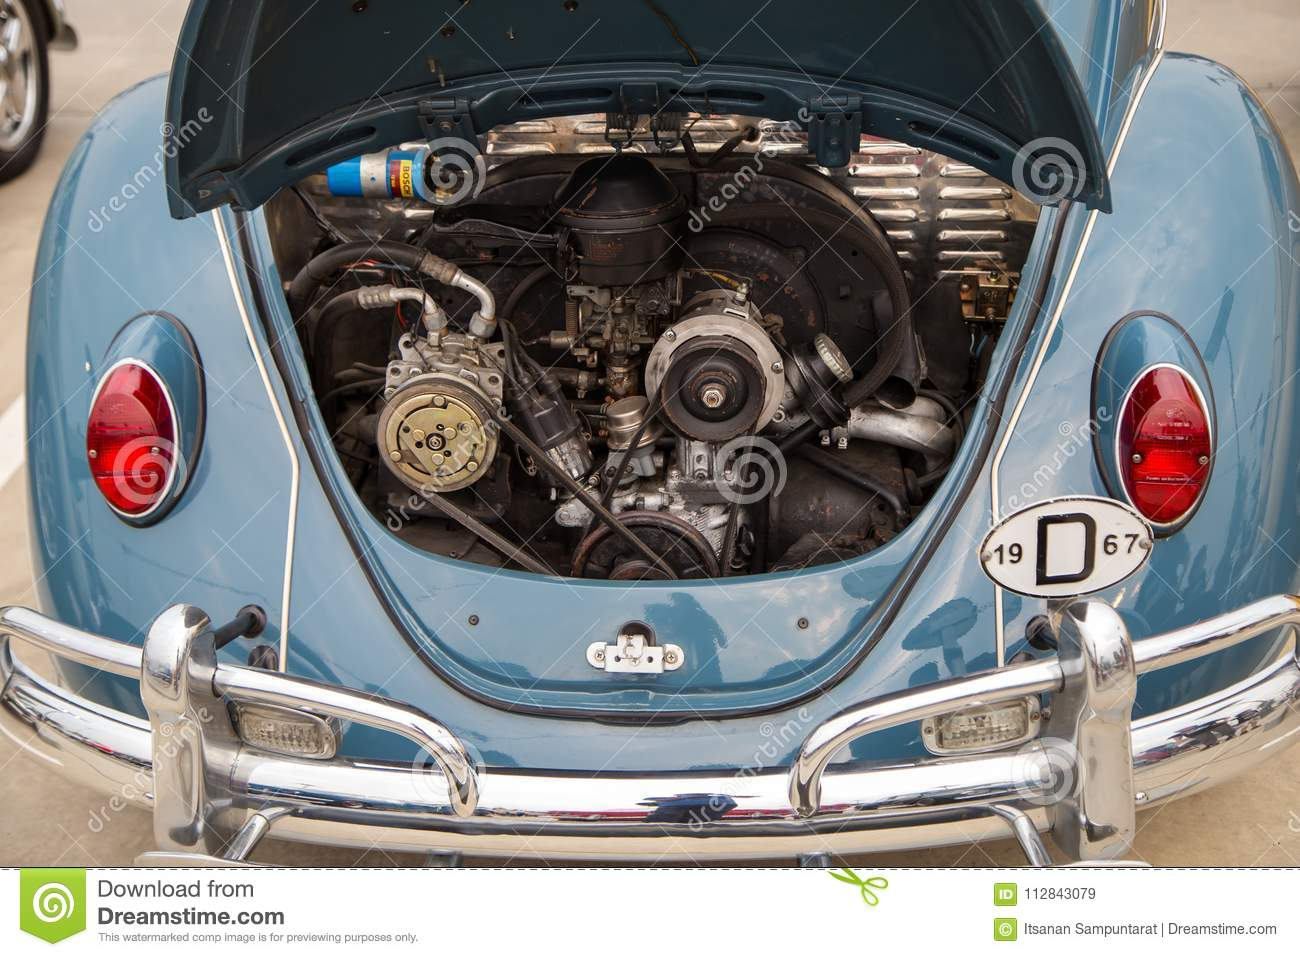 volkswagen kits and scale engine beetle on the of view front pinterest images beetles model weedub vw bugs best